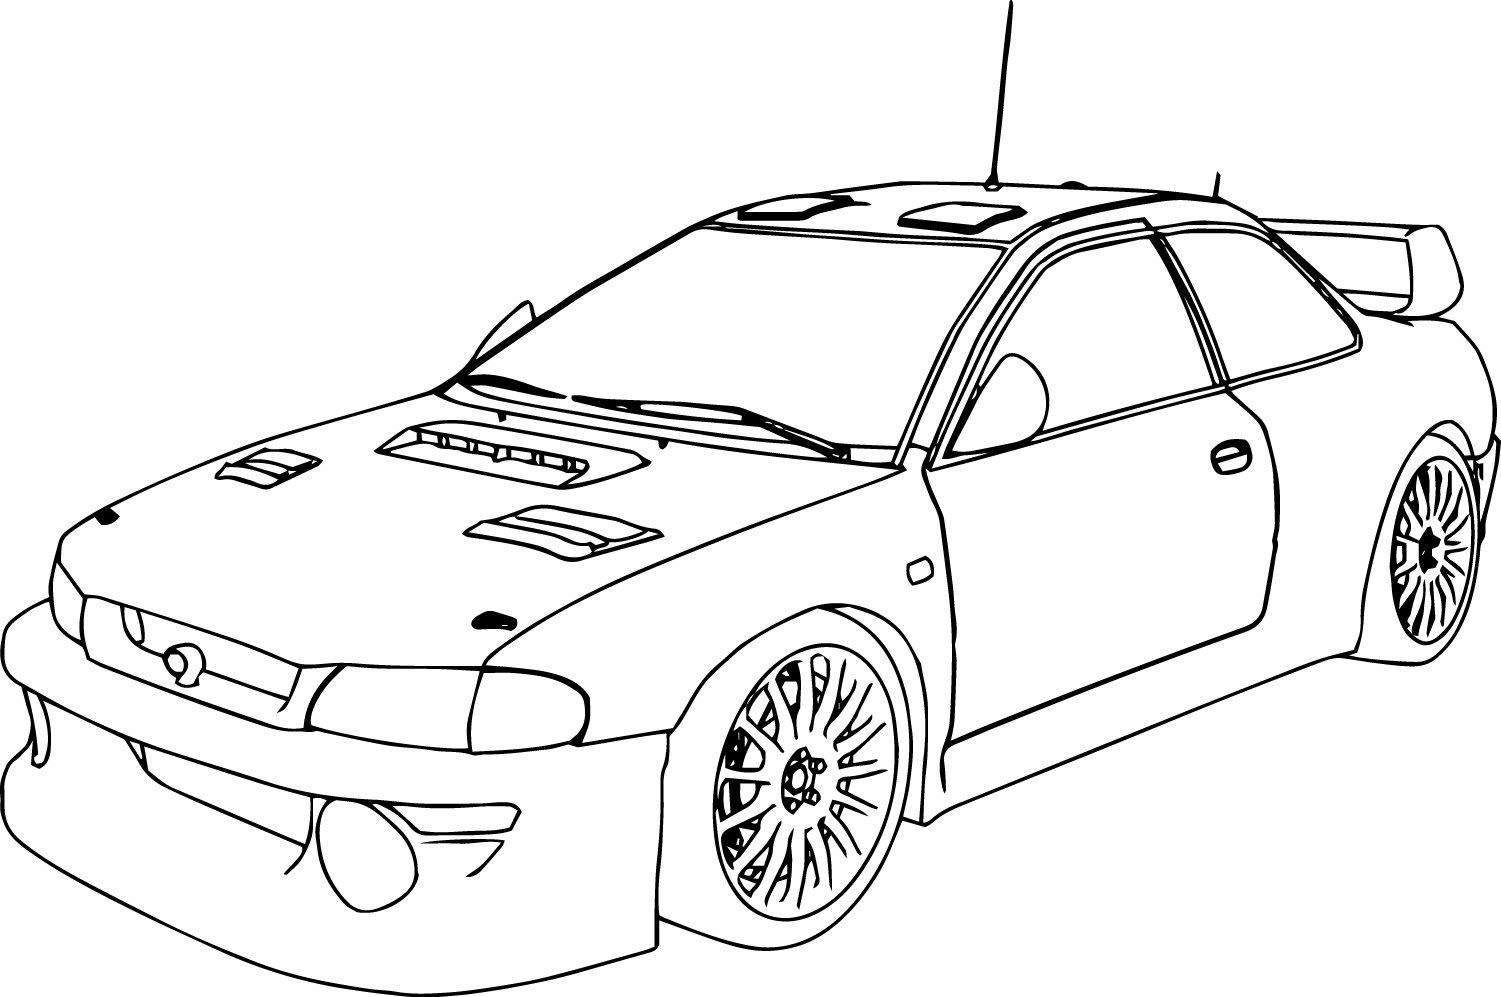 coloring page of car color in your favorit cars coloring page with some bright coloring of page car